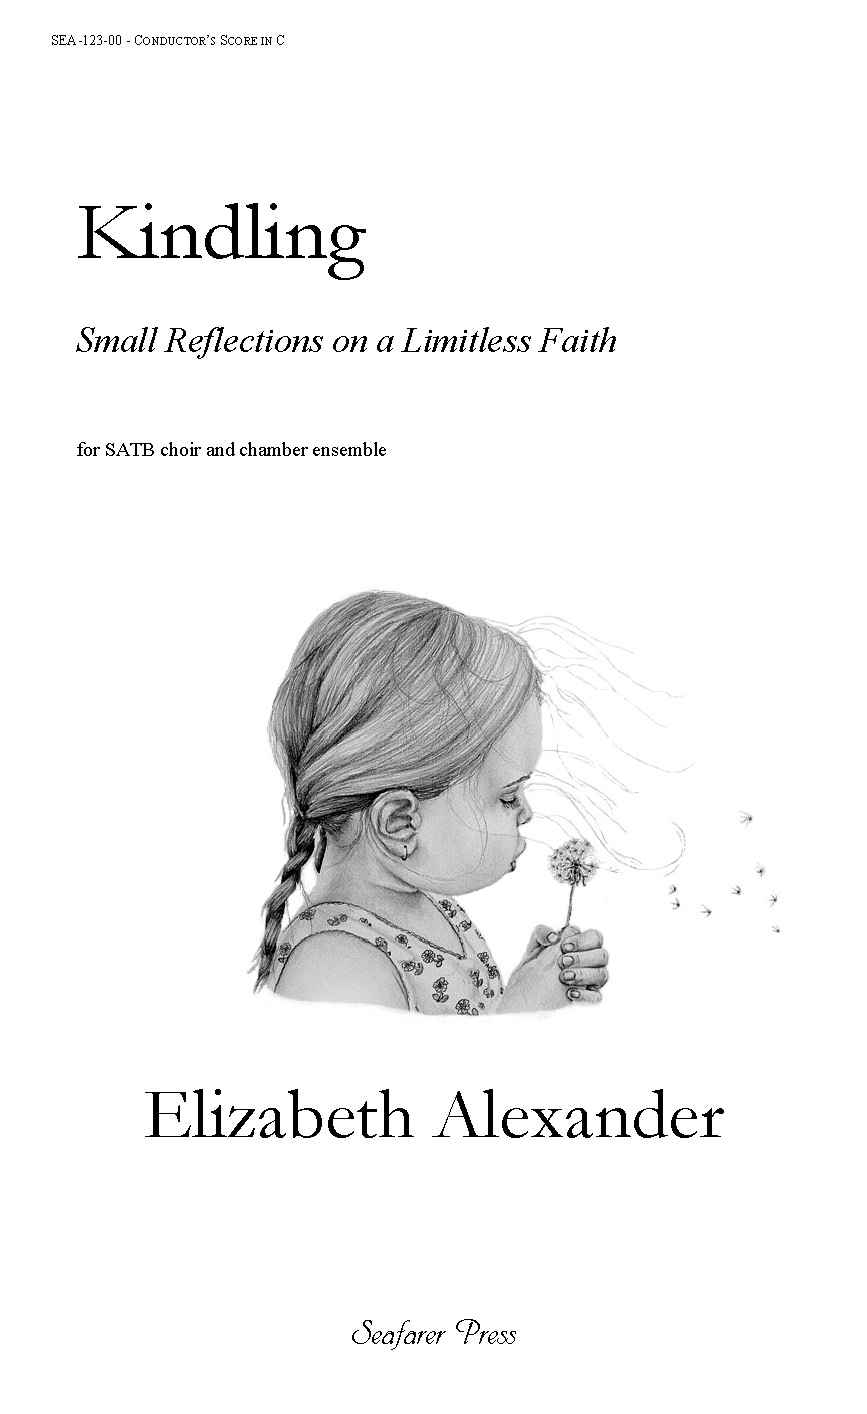 SEA-123-08R - Kindling: Small Reflections on a Limitless Faith